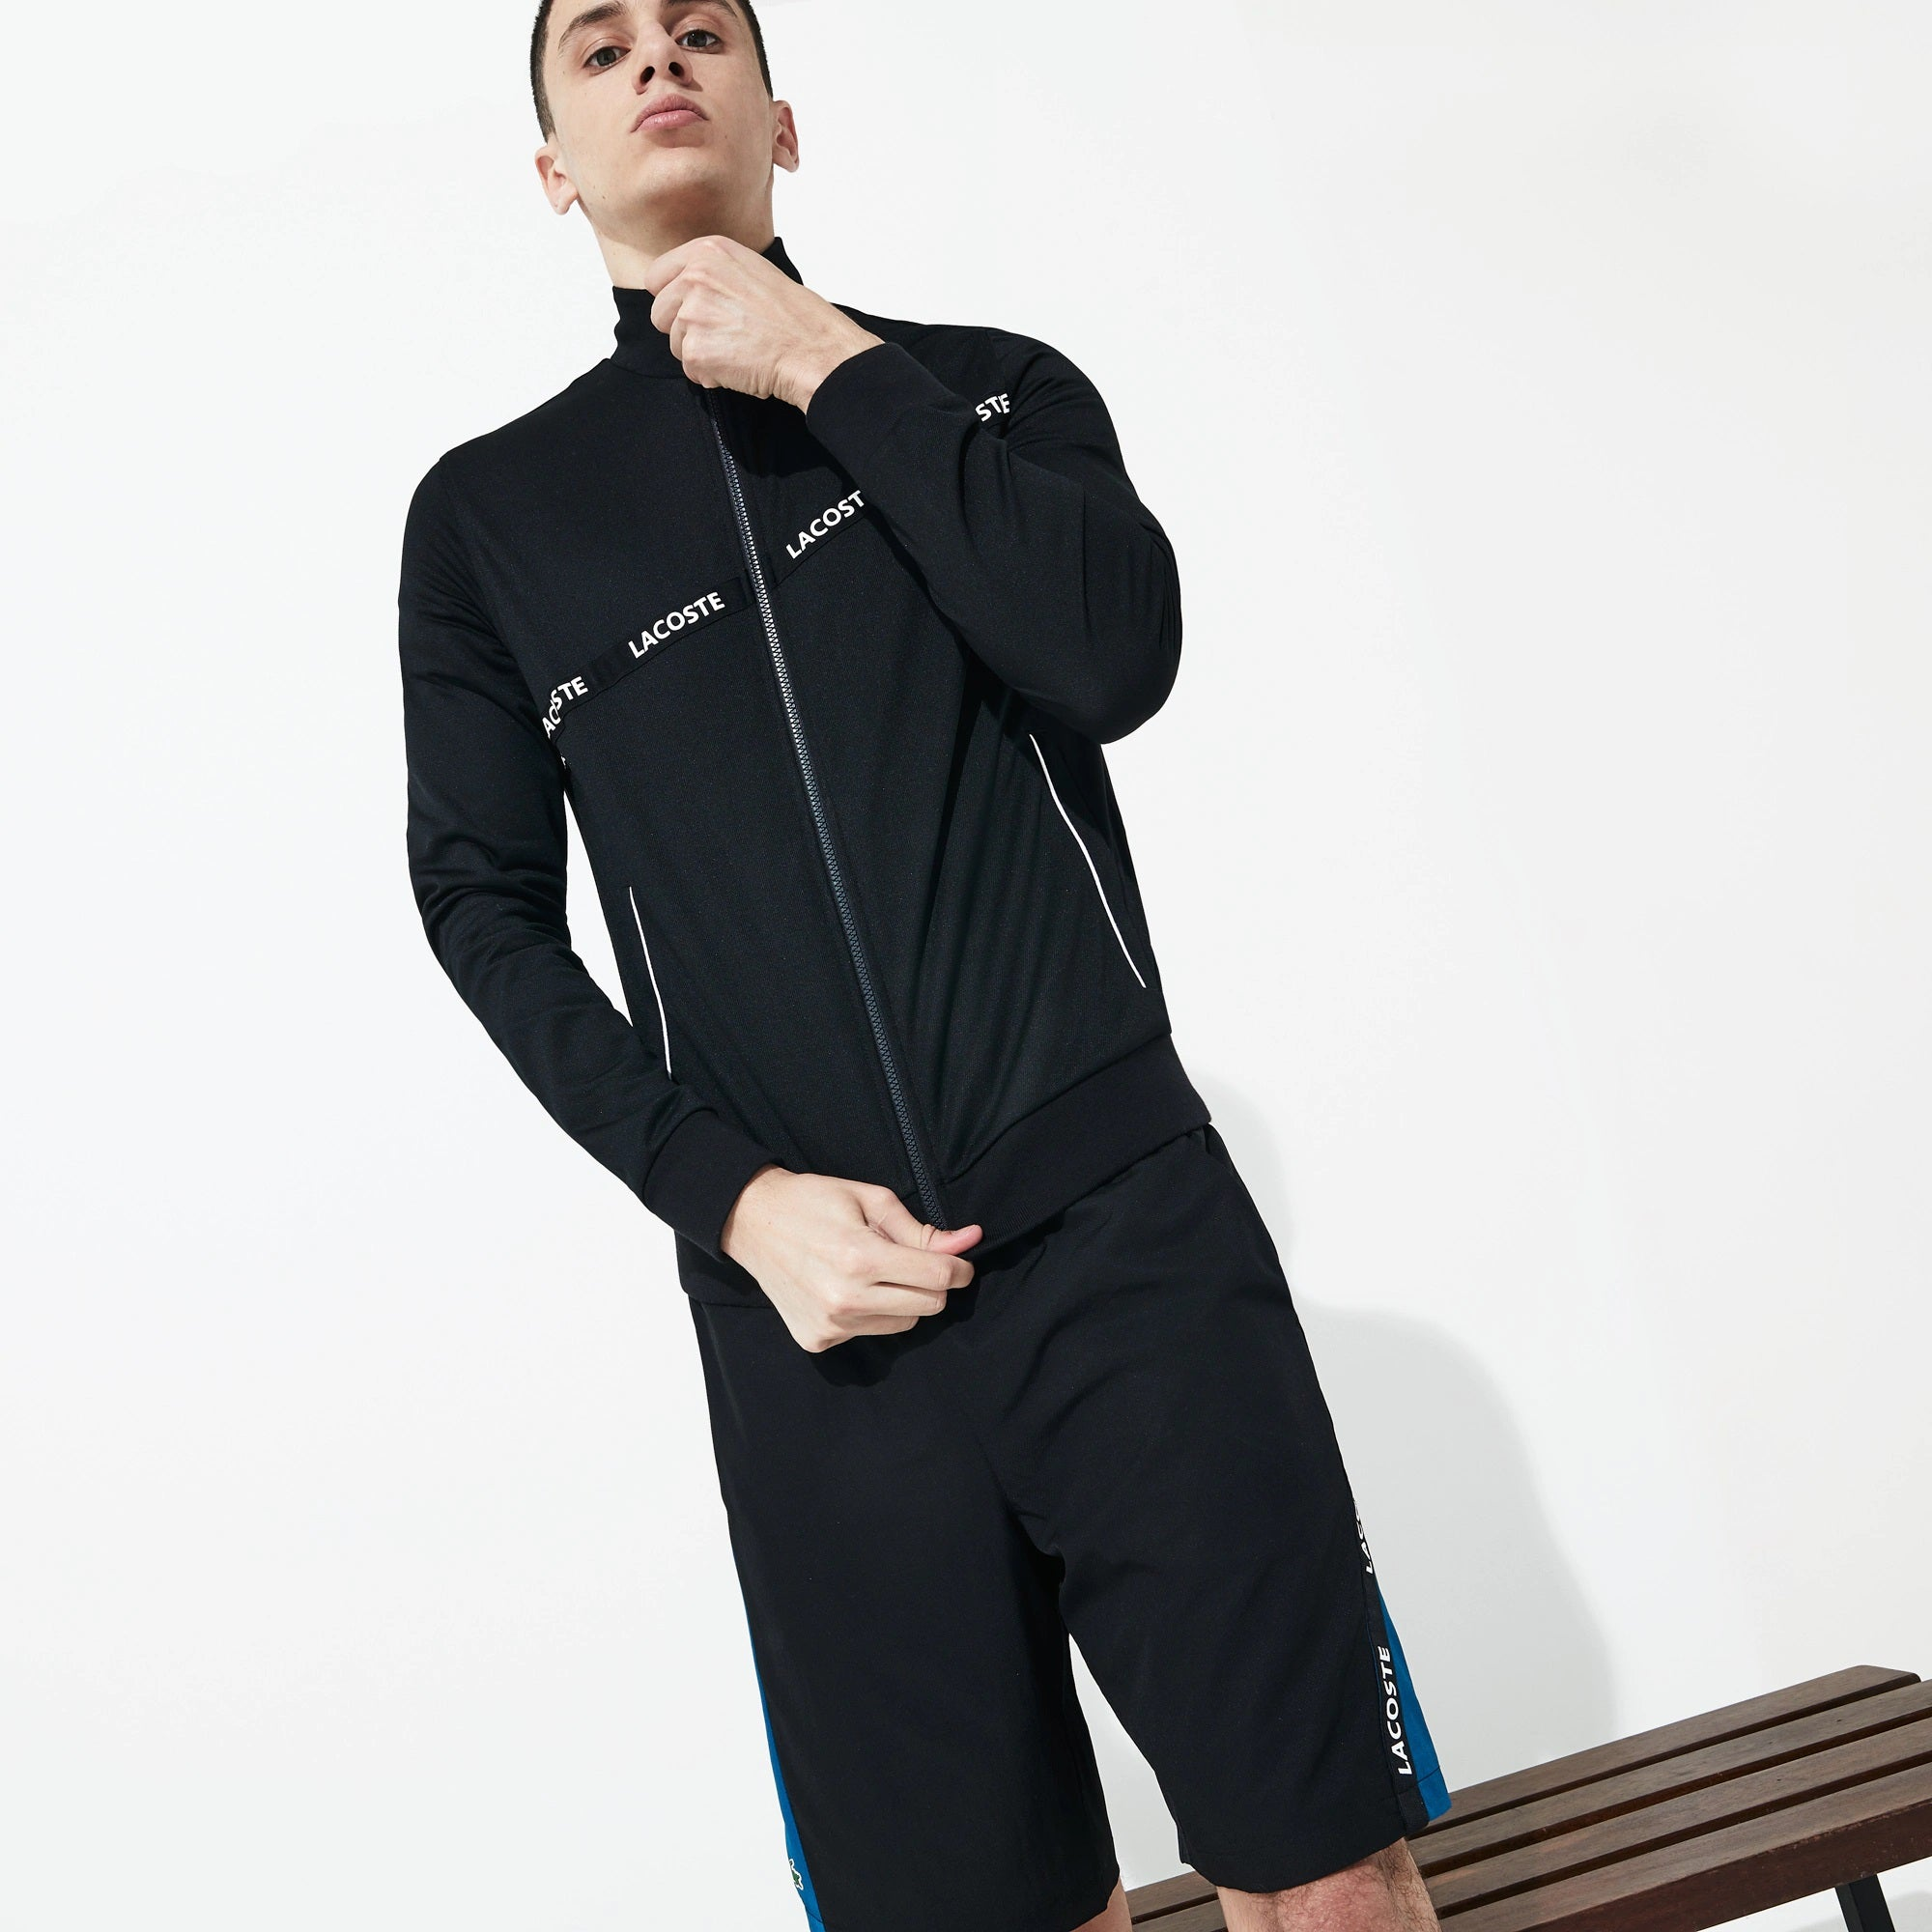 Men's SPORT Signature Band Piqué Zip Sweatshirt (Black/Black Black)